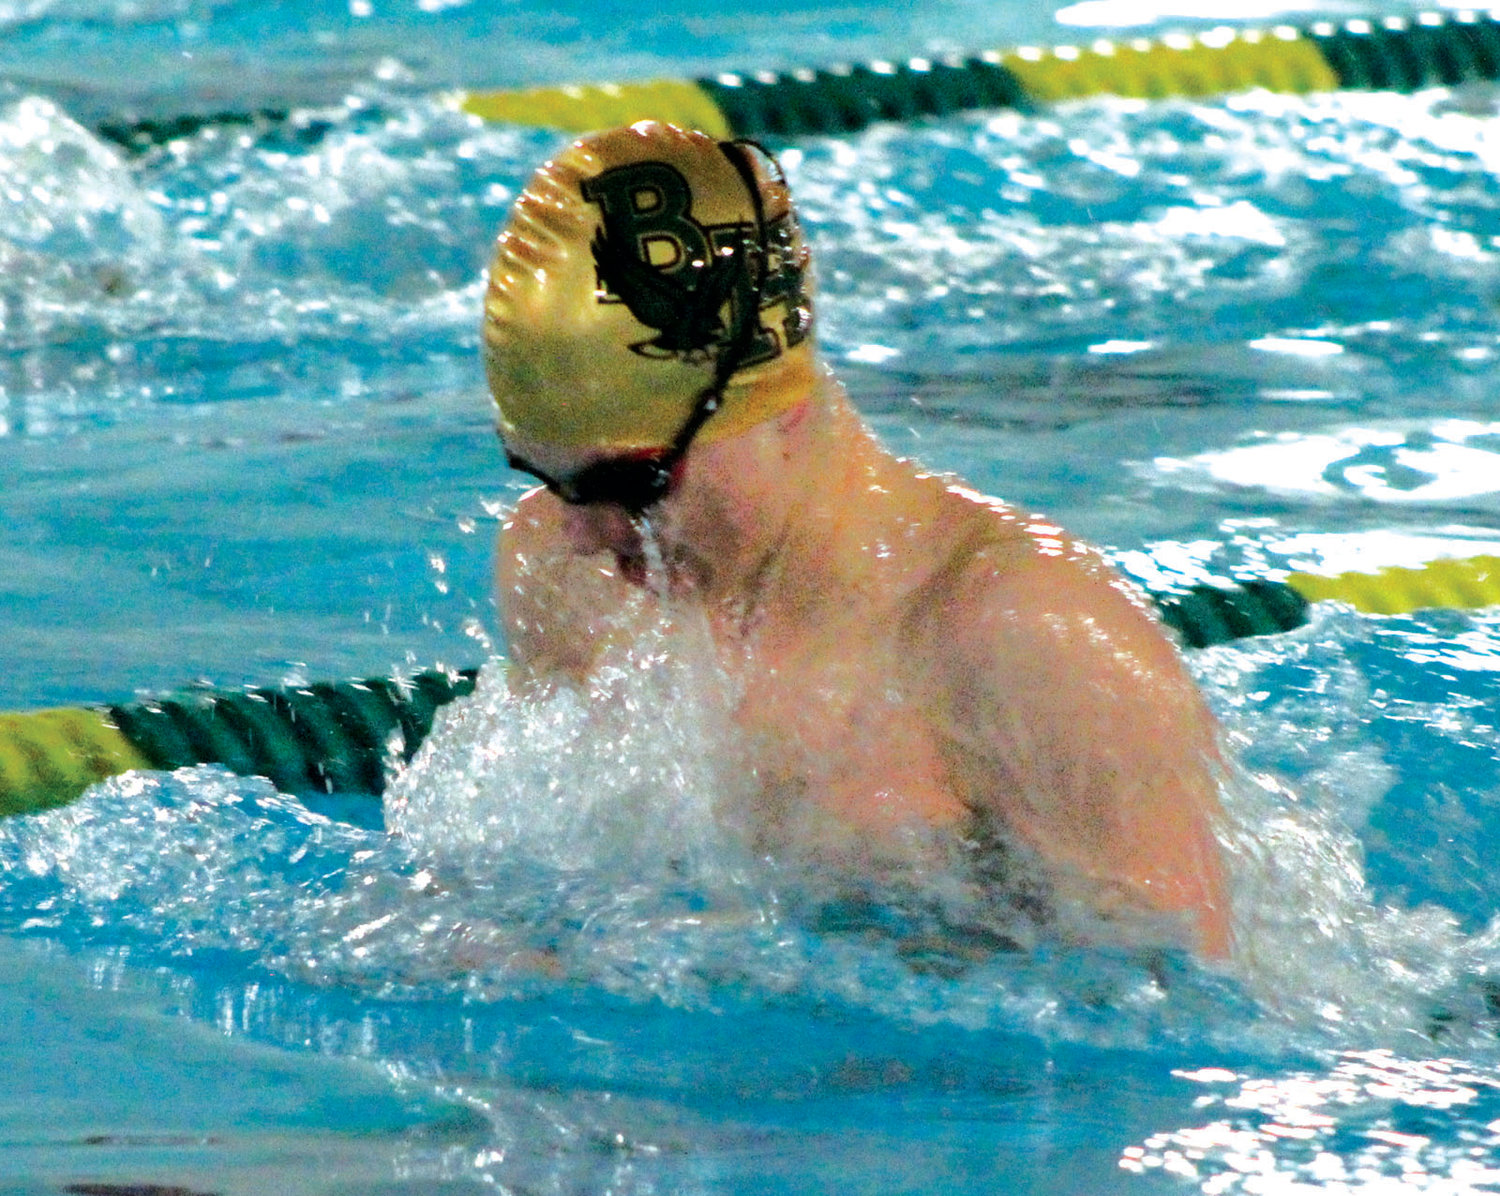 MAKING A SPLASH: Hendricken's Grant Dator competes in the breaststroke.